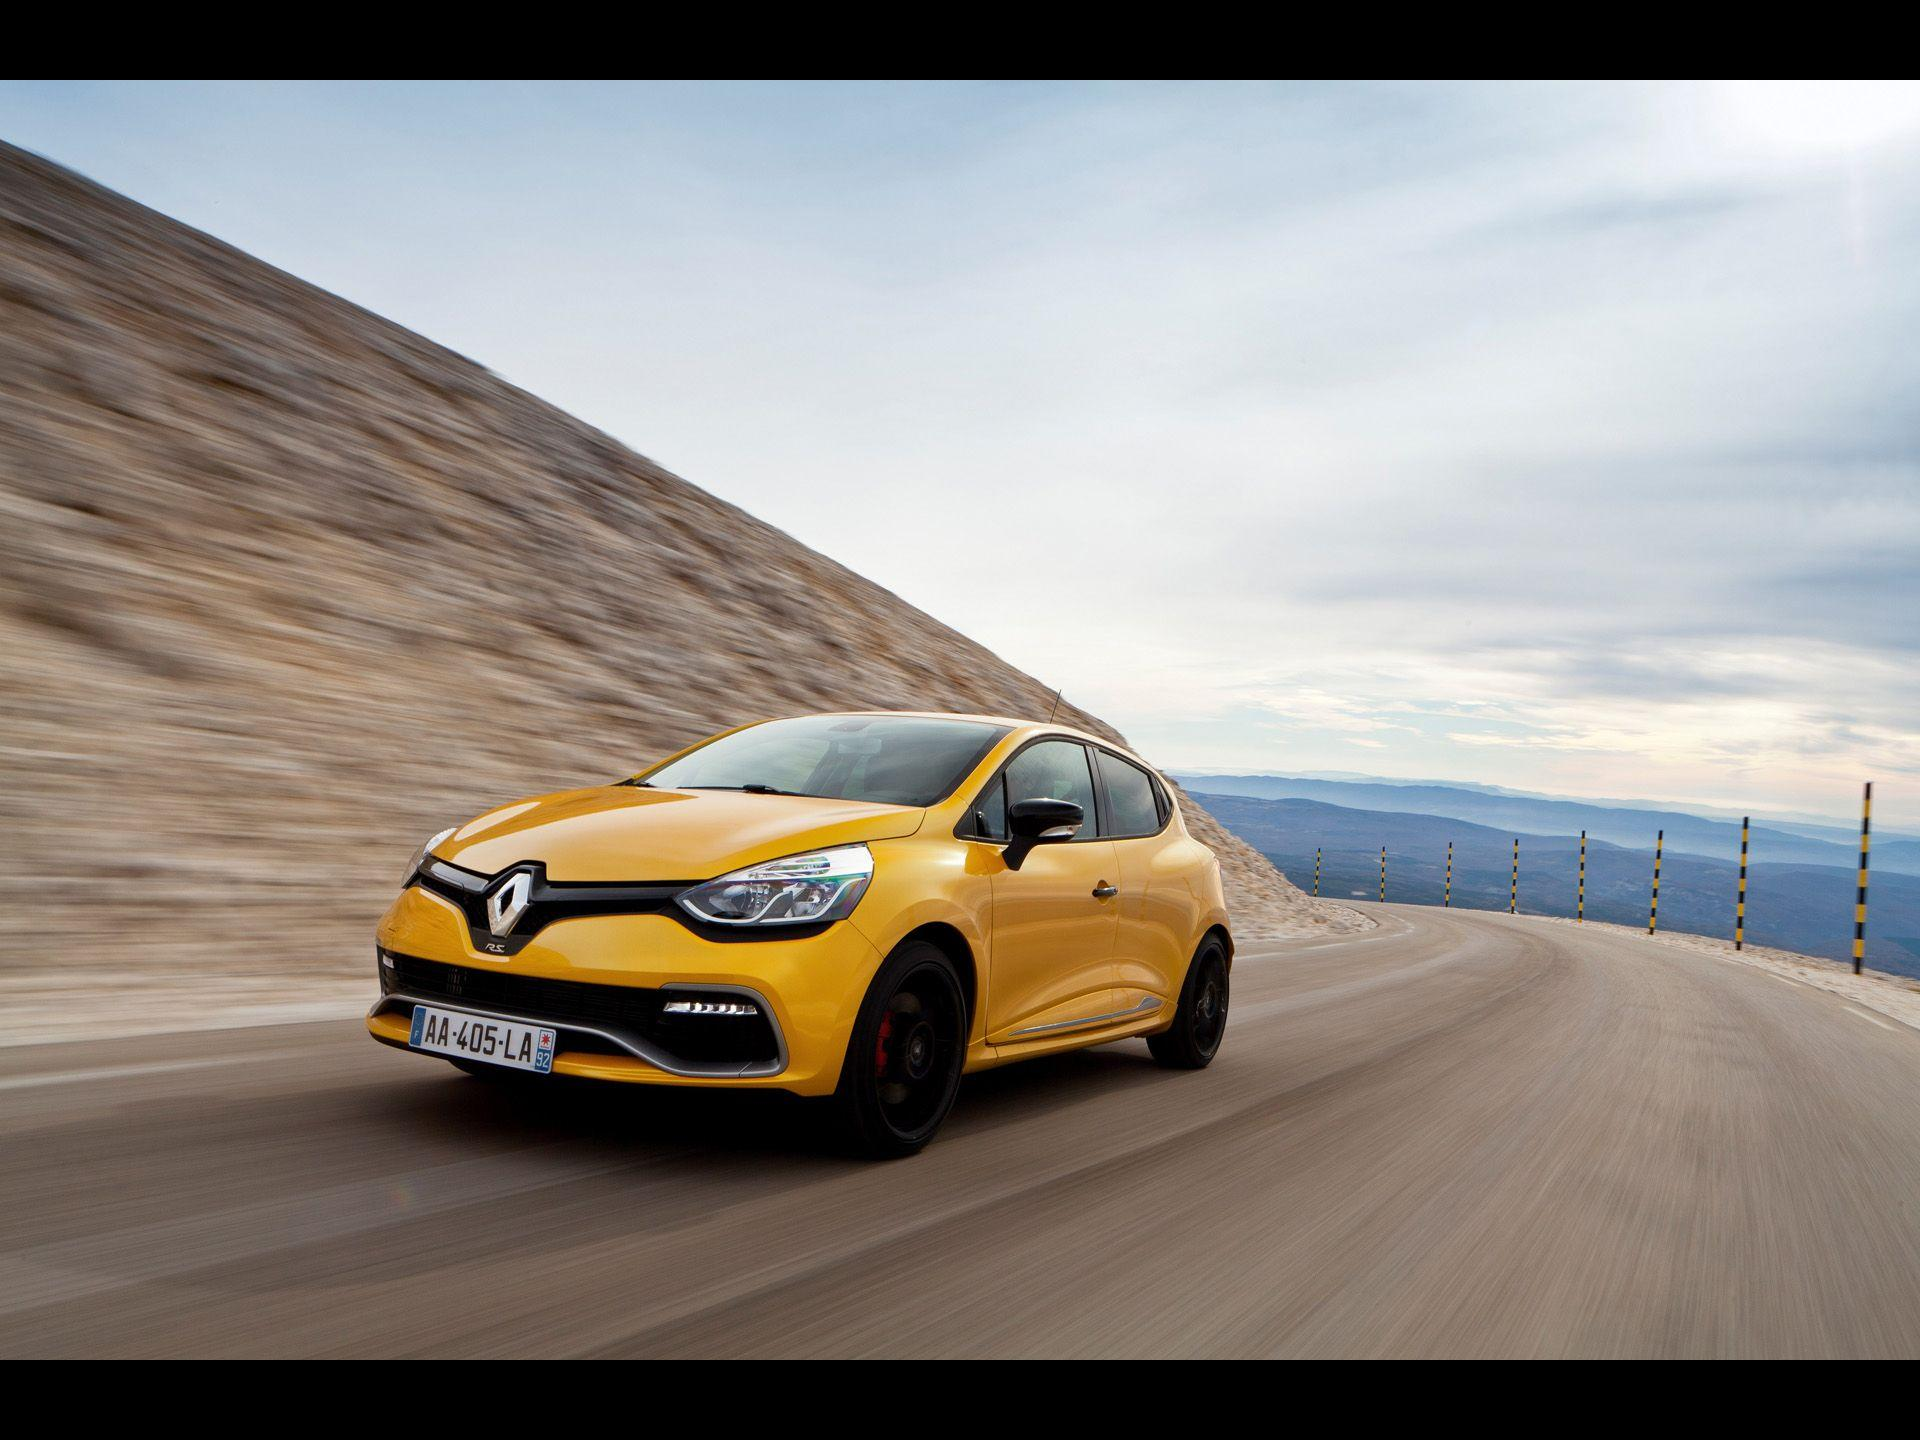 2013 Renault Clio RS 200 EDC Motion Rear wallpapers